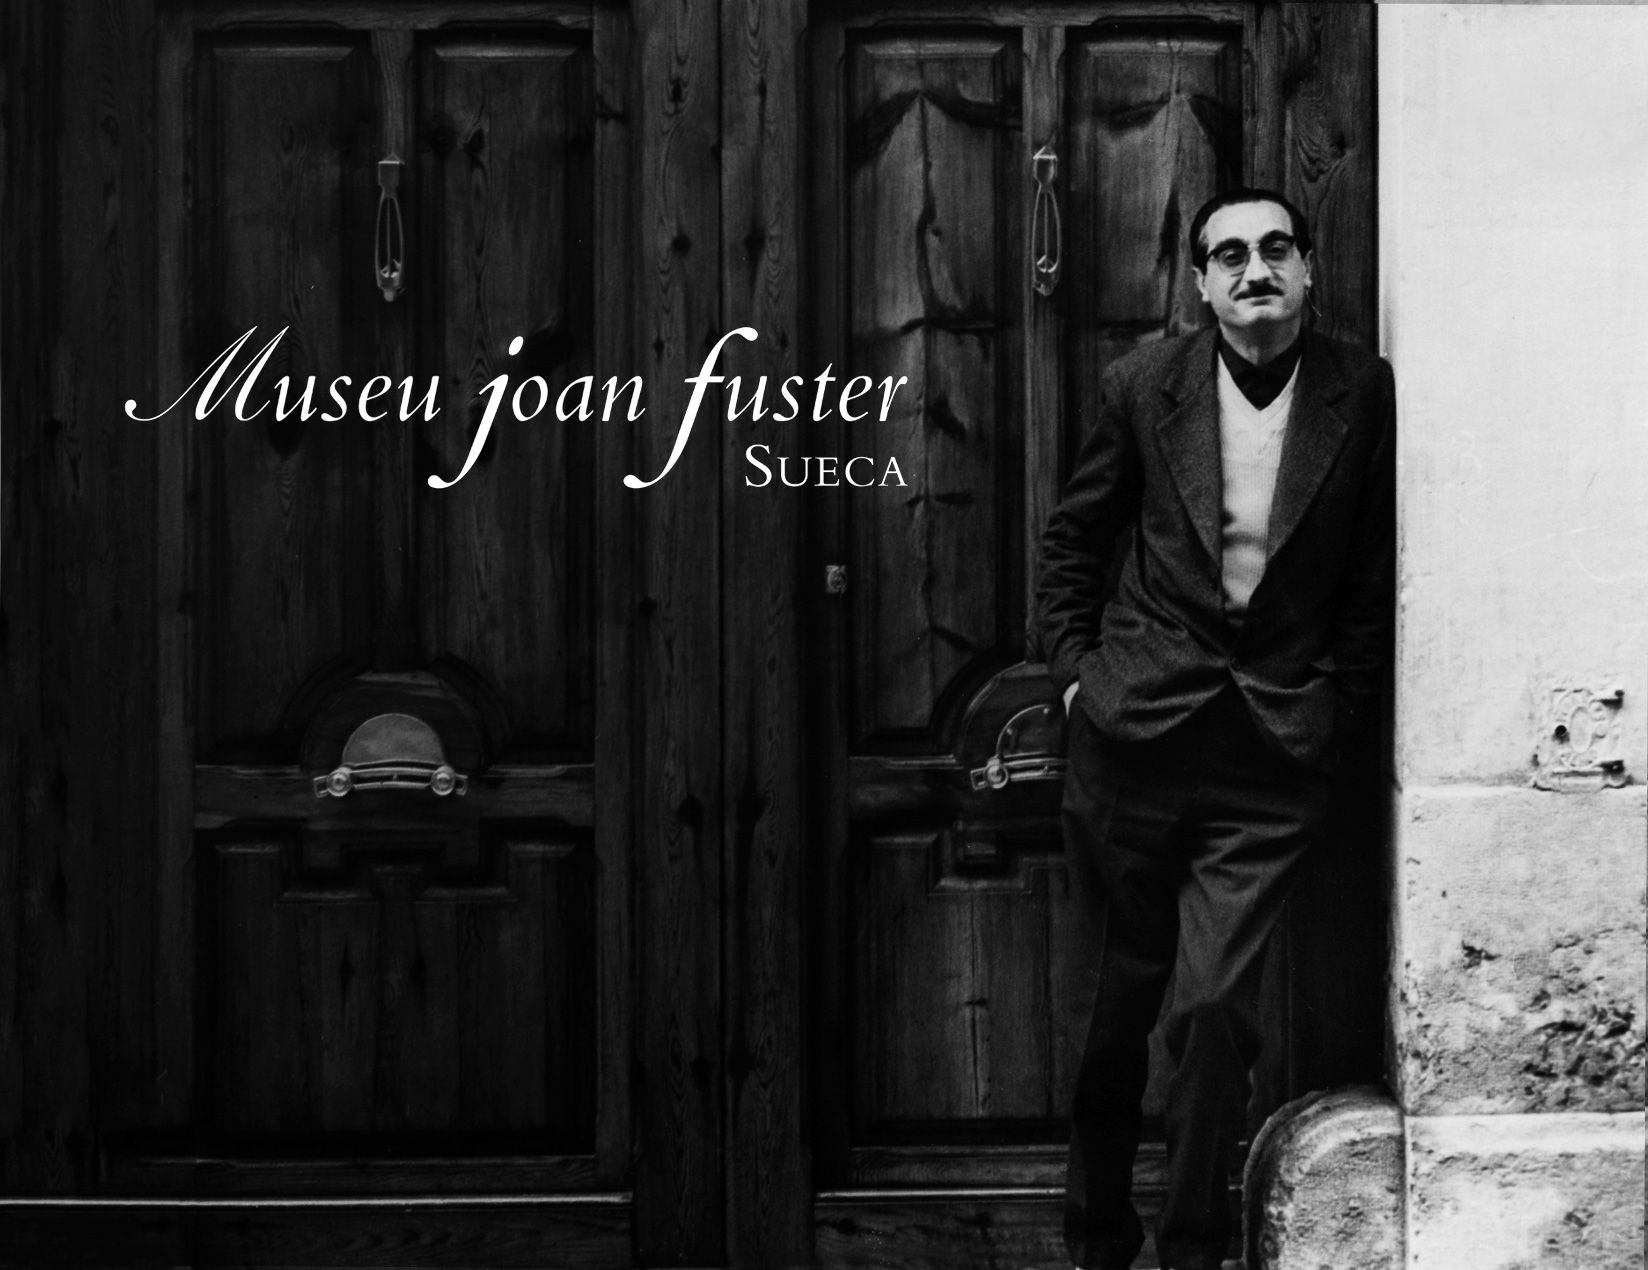 Museo Joan Fuster